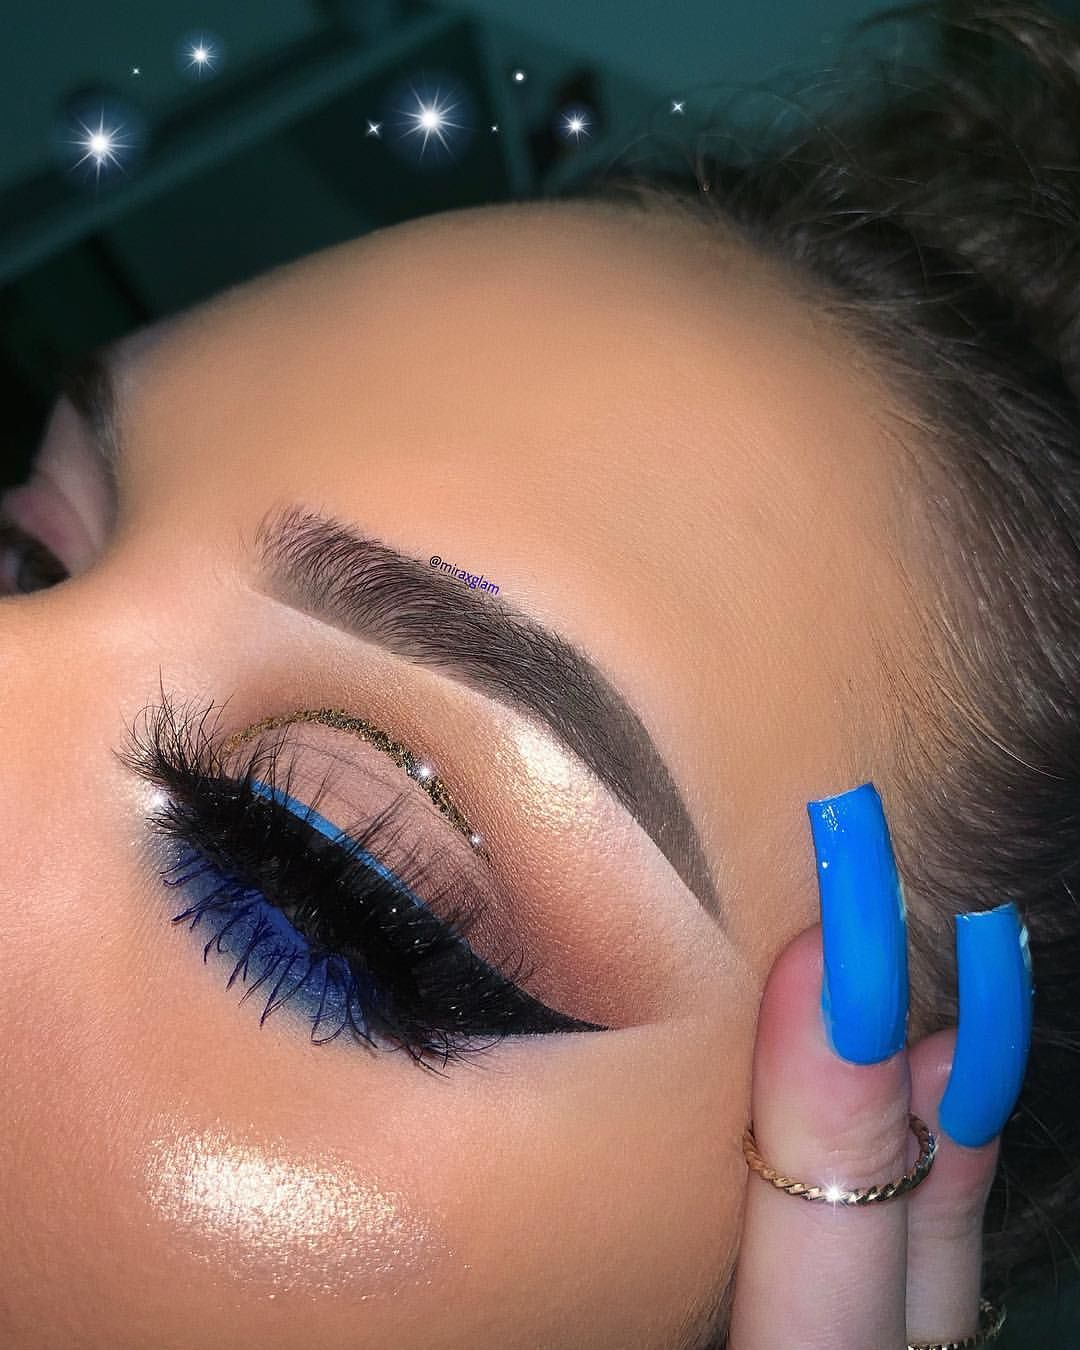 """Photo of Miranda Sipko on Instagram: """"💙𝒷𝓁𝓊𝑒💙 ———- Today I used the @bebellacosmetics after dark palette! This palette launches tomorrow!! Highly recommend this palette (or the…"""""""